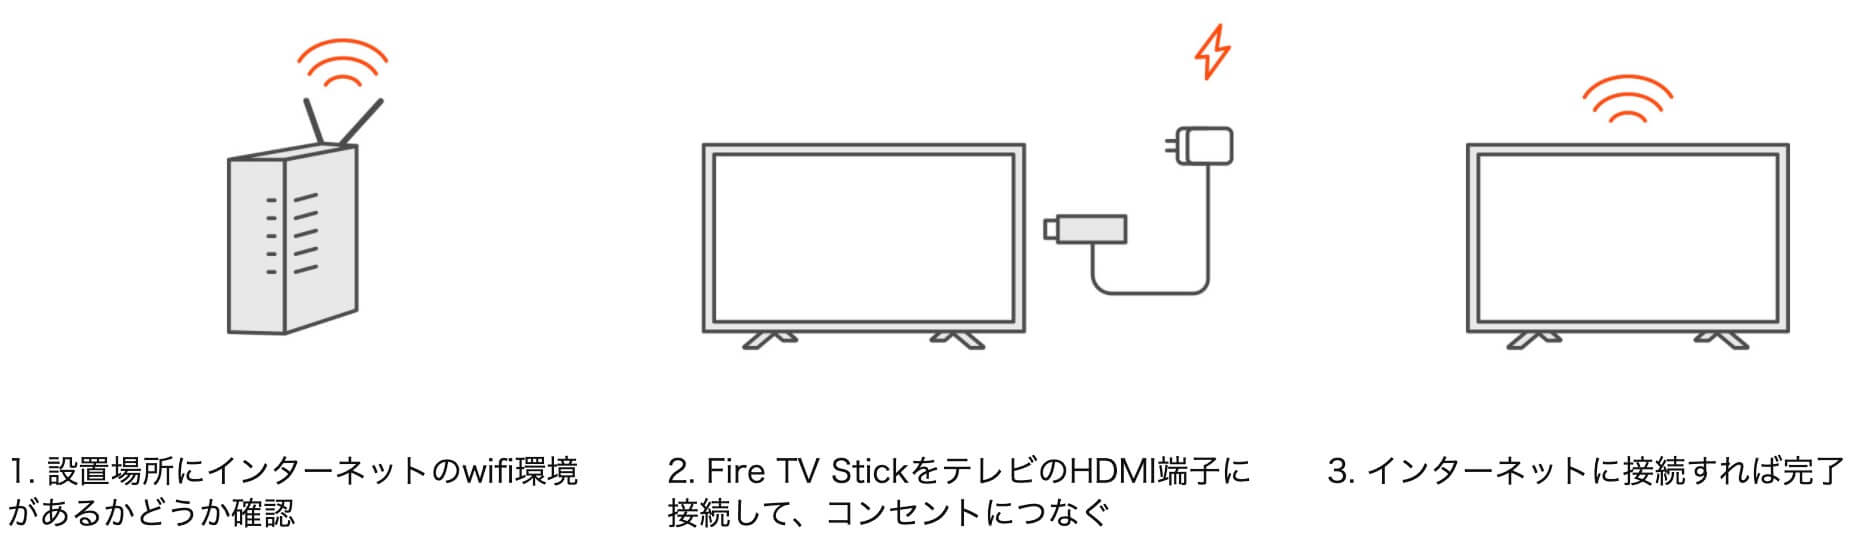 fire tv stick接続方法